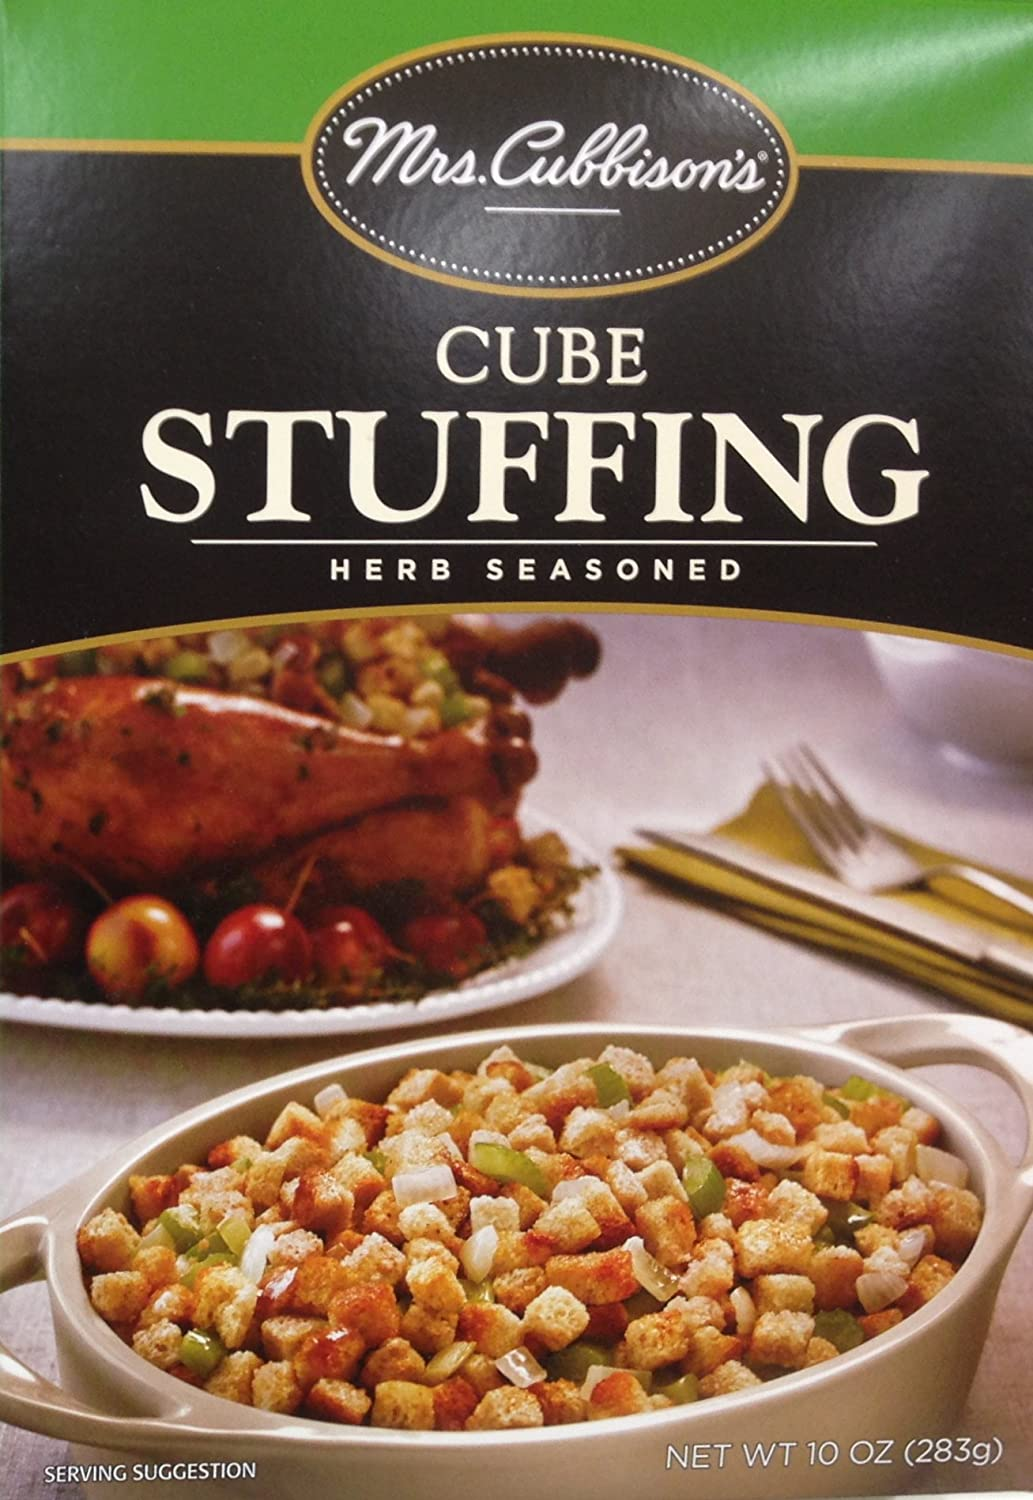 Mrs. Cubbison's Herb Seasoned CUBE 10oz. El Paso Mall 8 Boxes Stuffing High quality